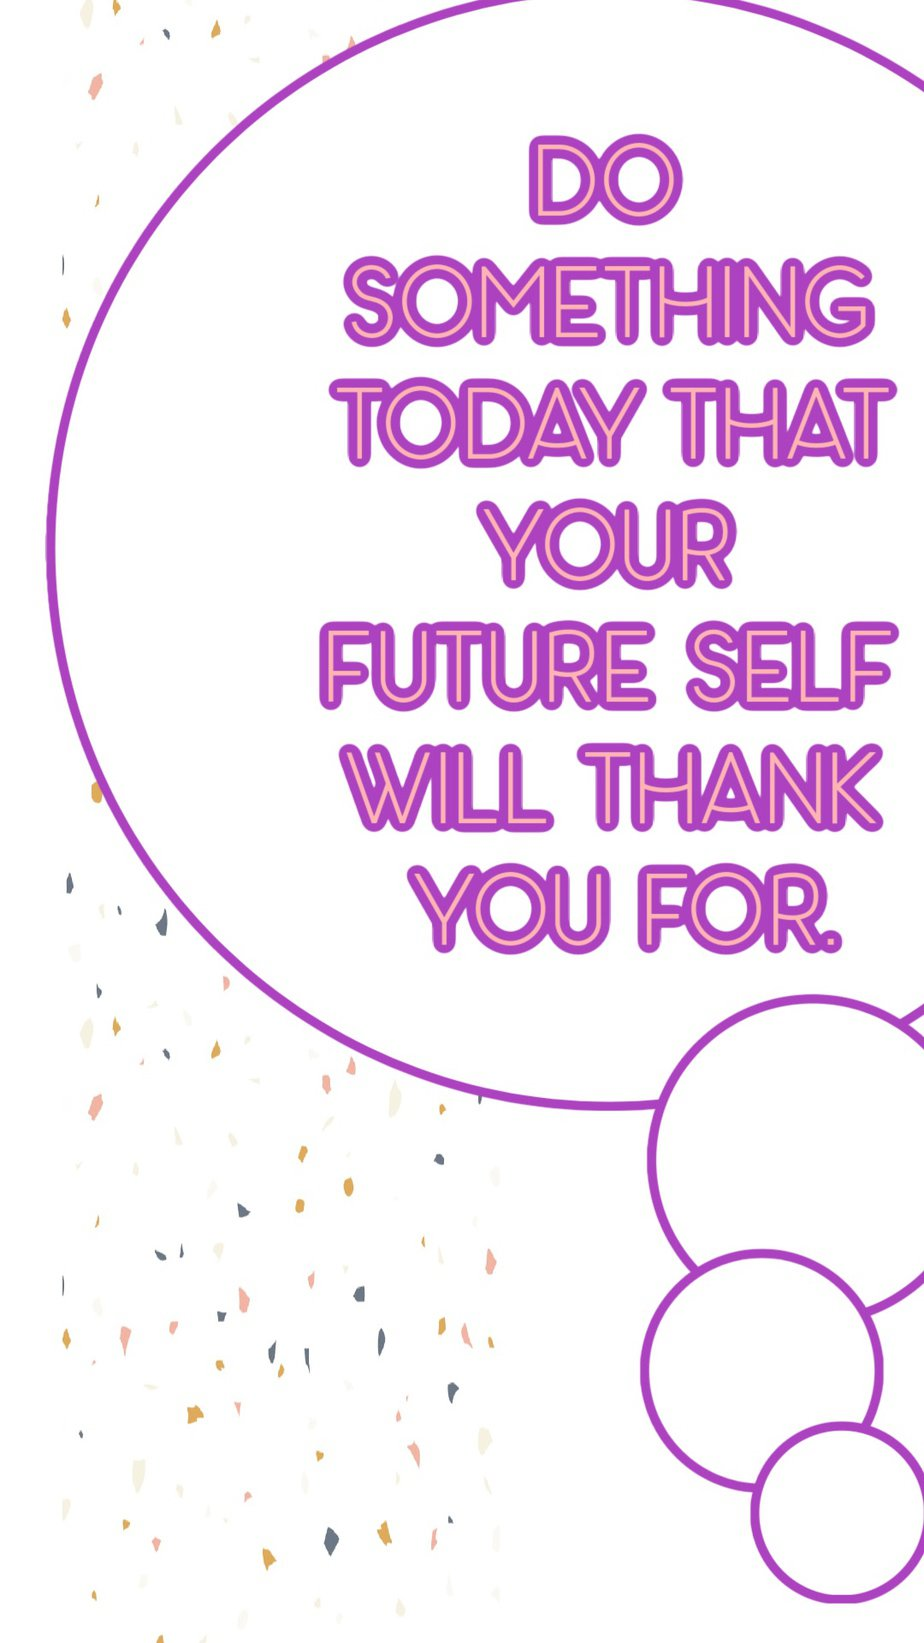 Best Aesthetic Phone Wallpaper Quotes About The Future Do something today that your future self will thank you for